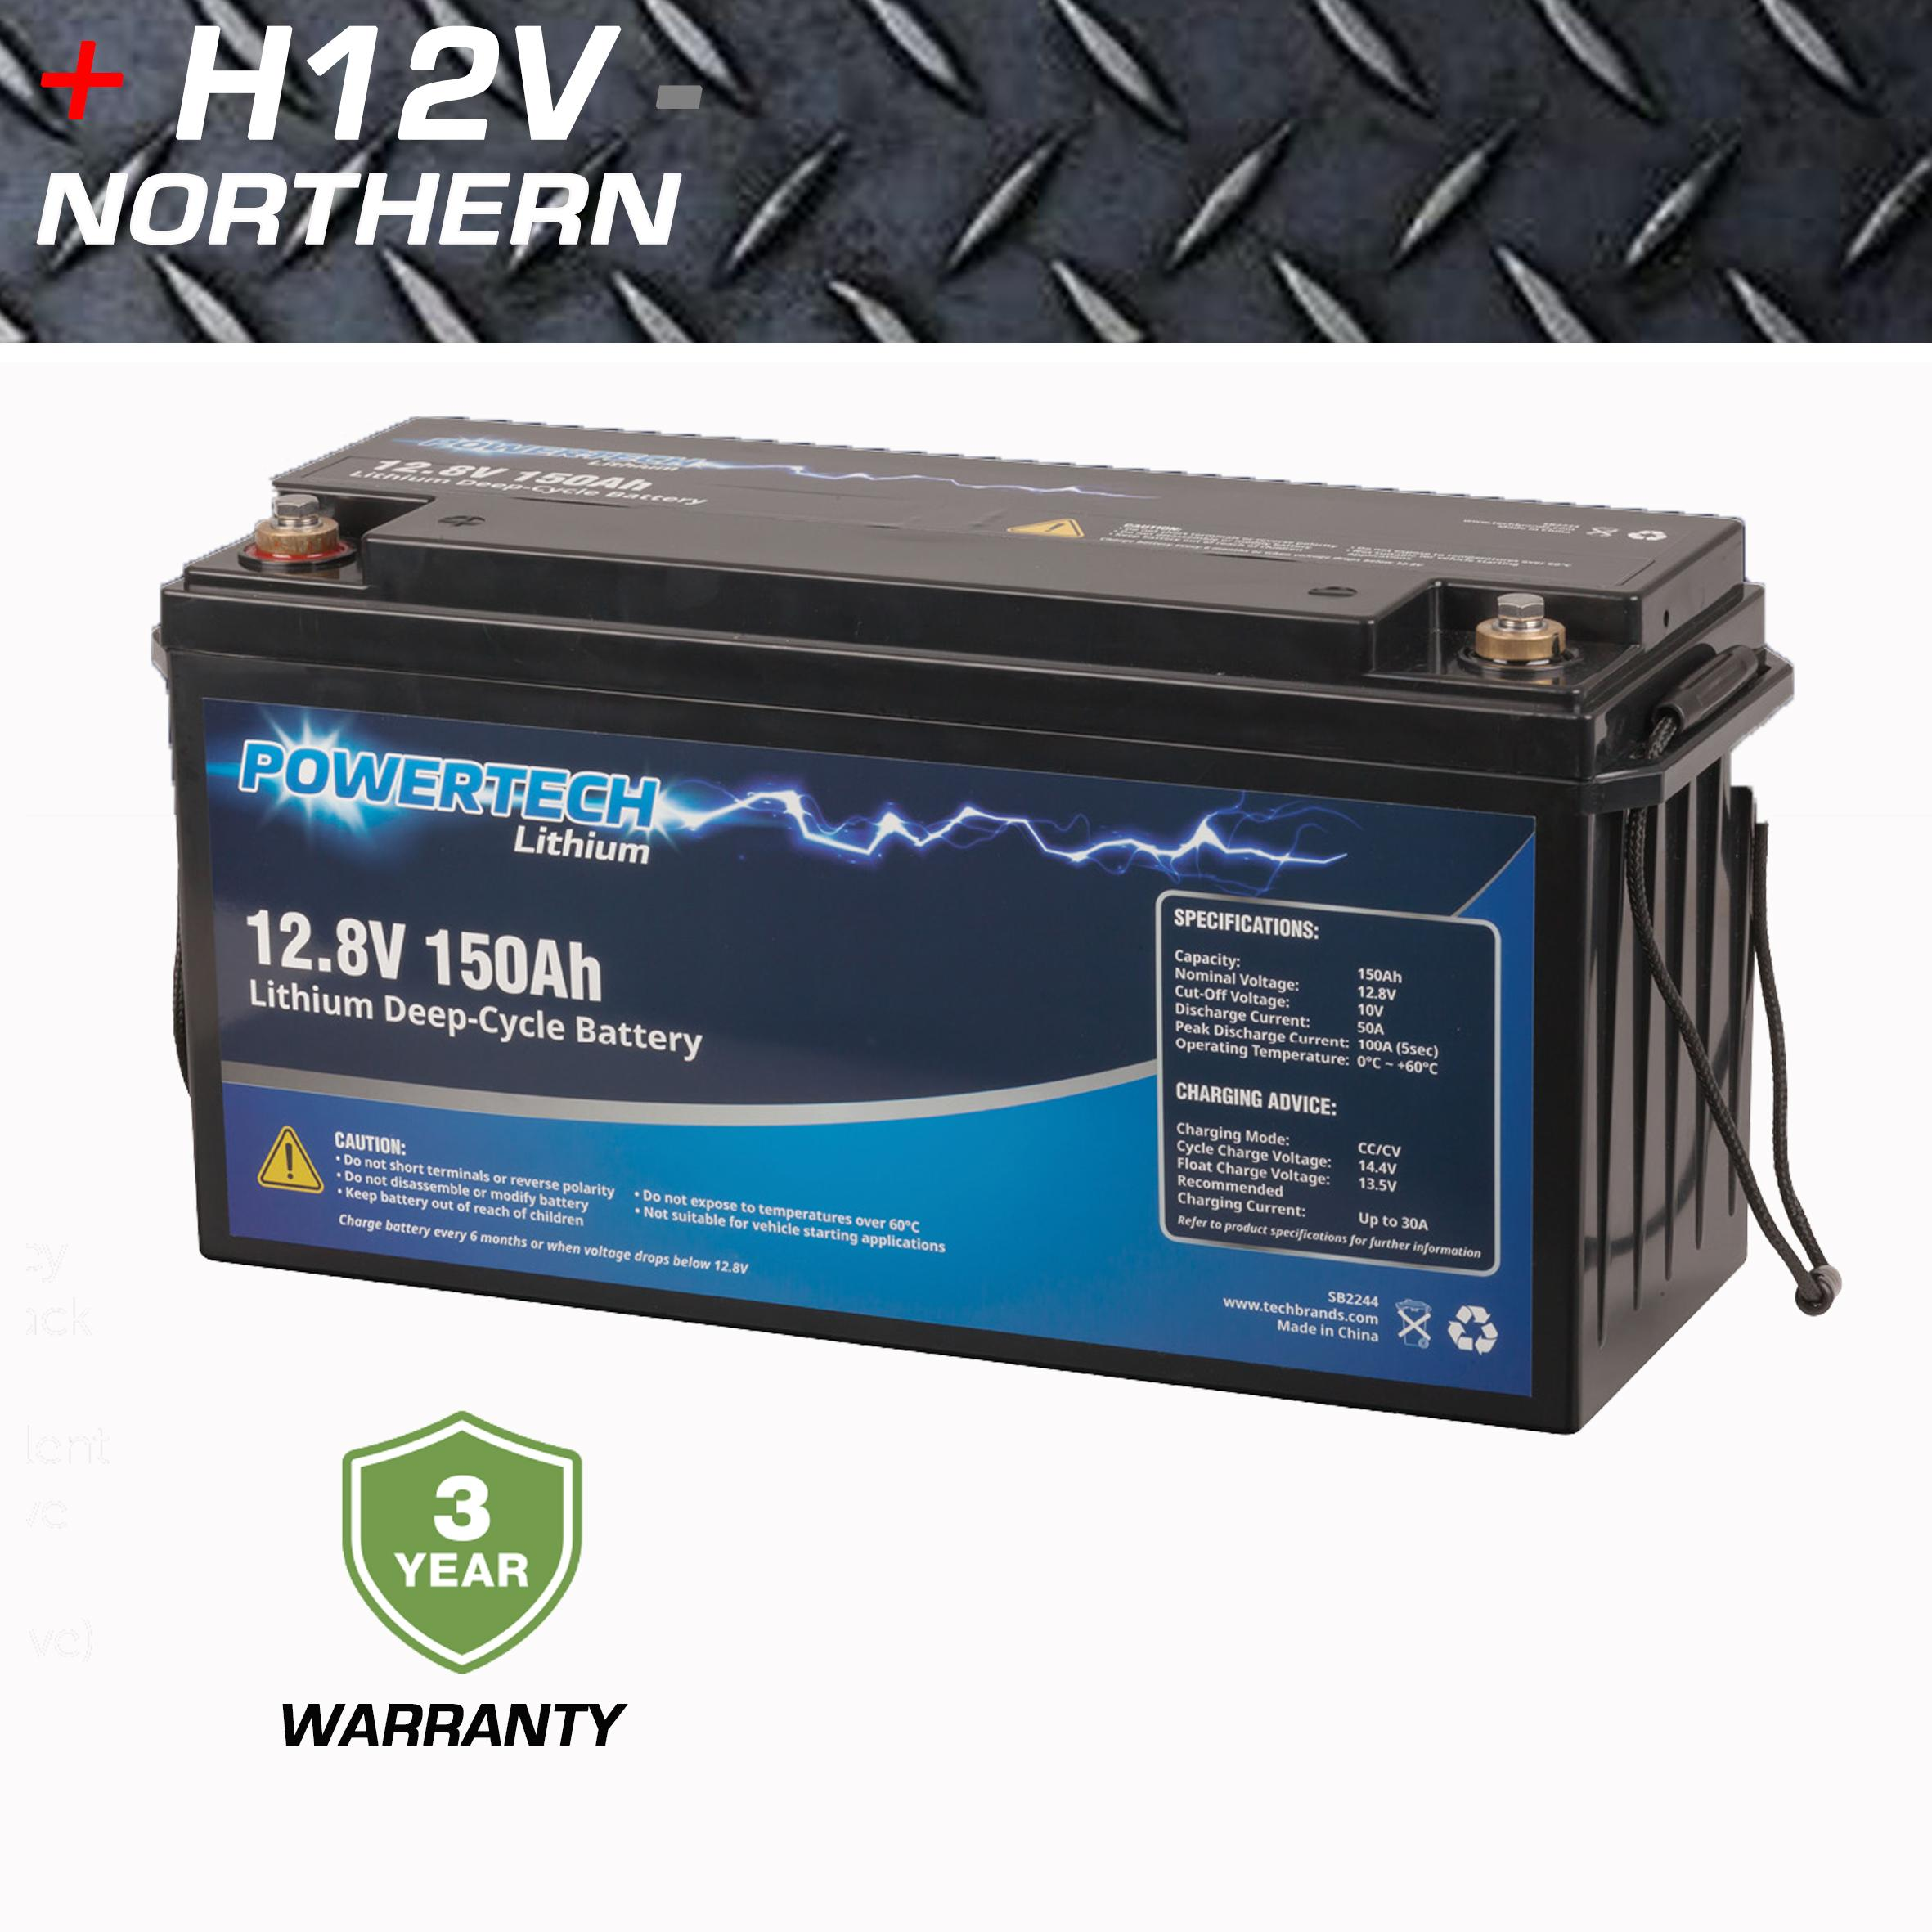 Powertech 150amp Lifepo4 Lithium Battery Home Of 12 Volt